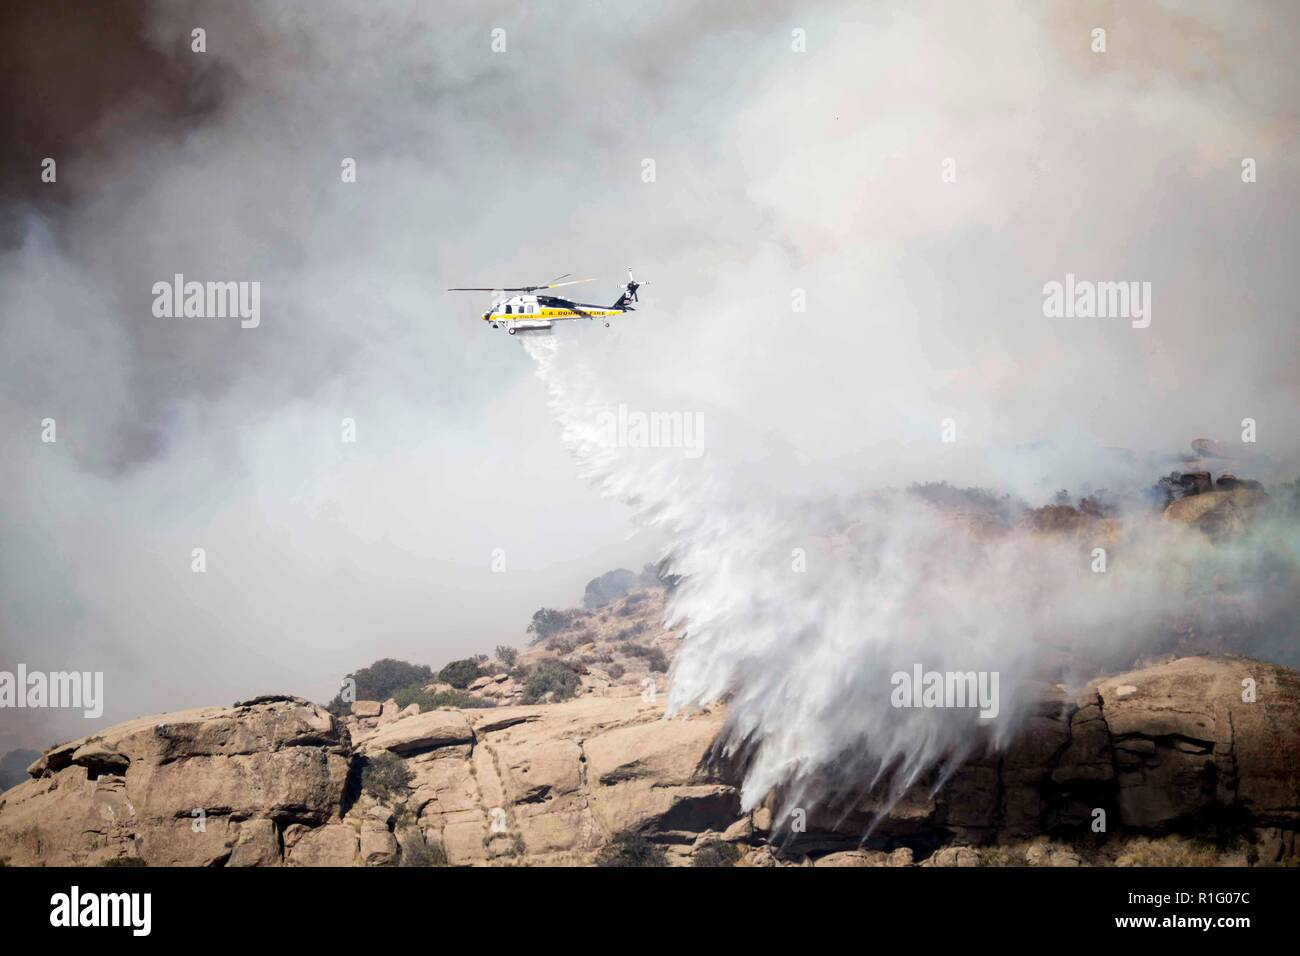 Fire Outbreak Stock Photos & Fire Outbreak Stock Images - Alamy